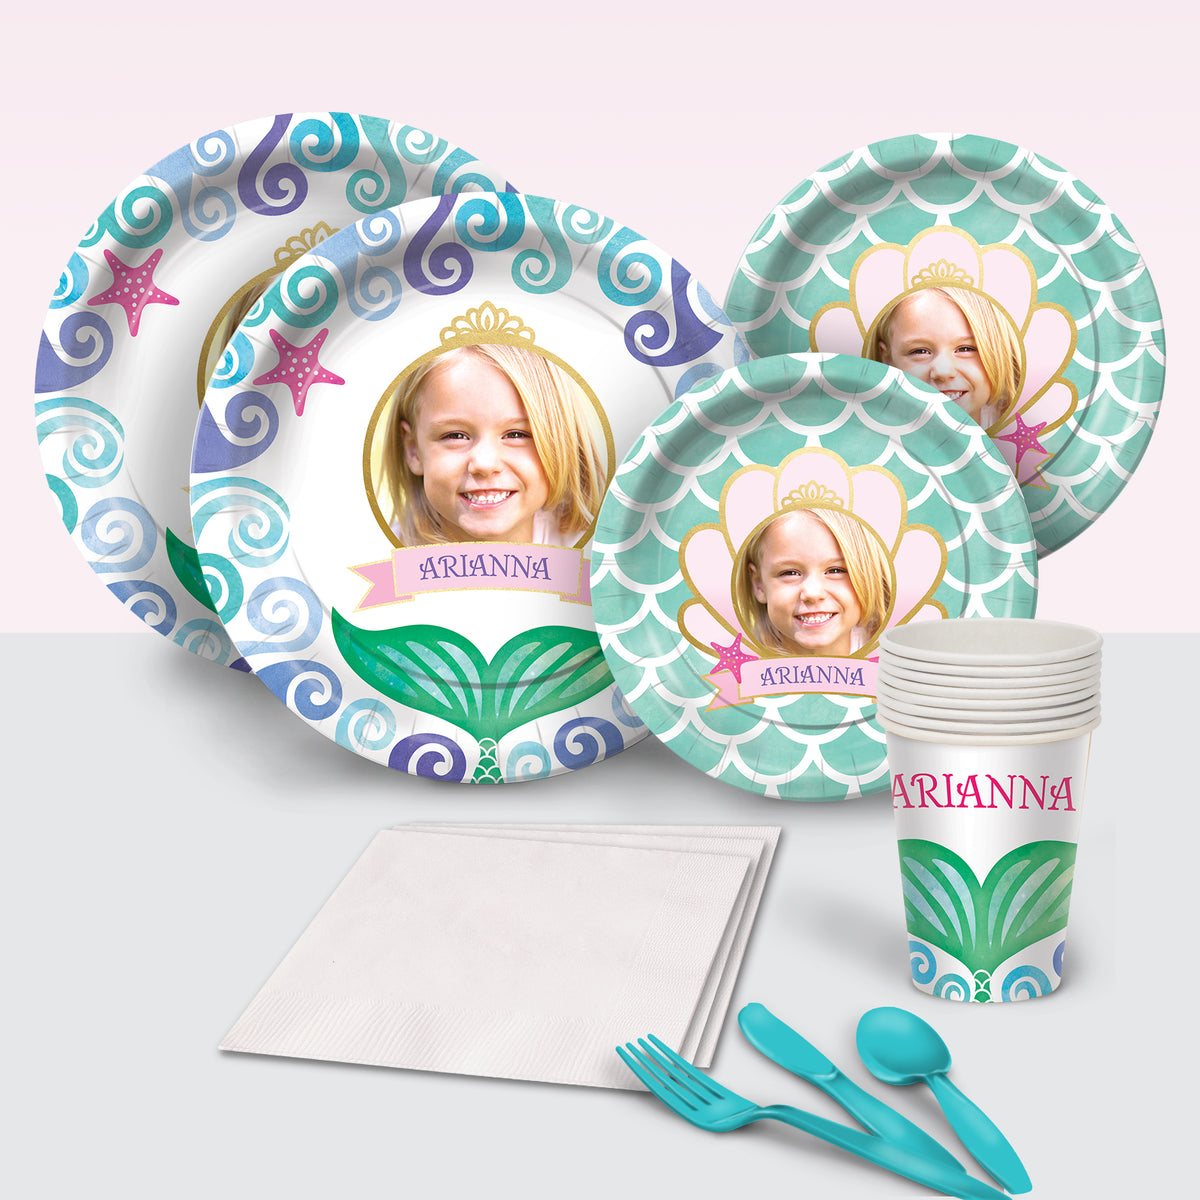 Waves and Wishes Personalized Basic Party Pack